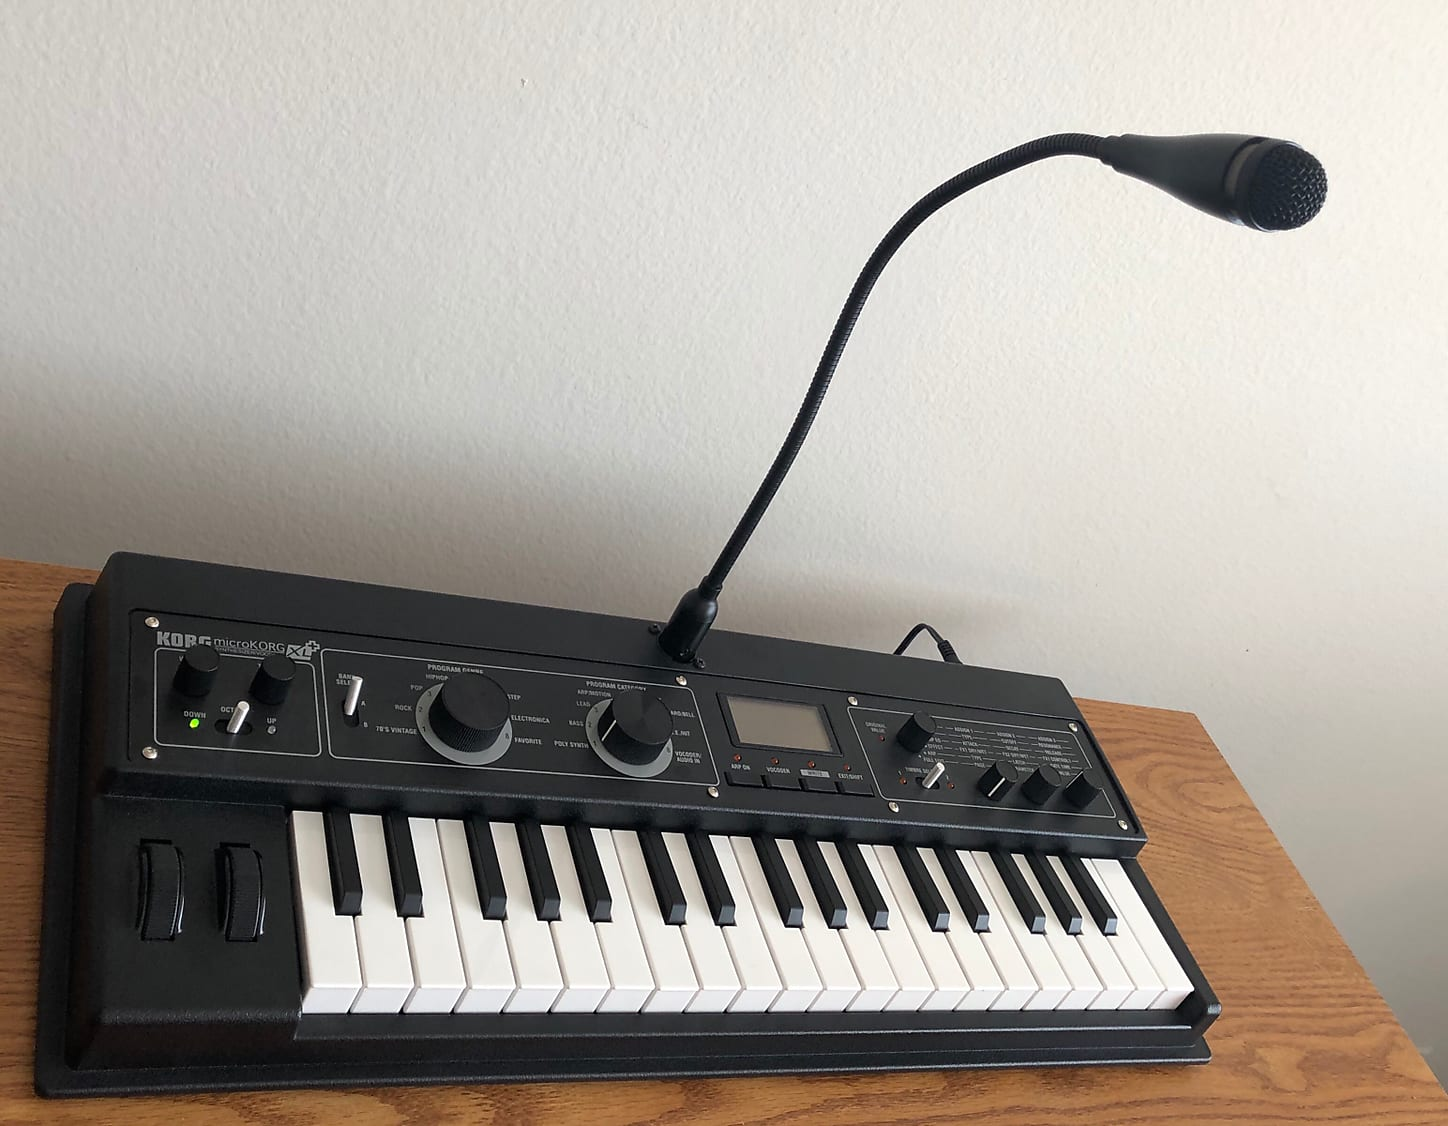 MATRIXSYNTH: Korg microKORG XL+ Analog Modeling Synthesizer